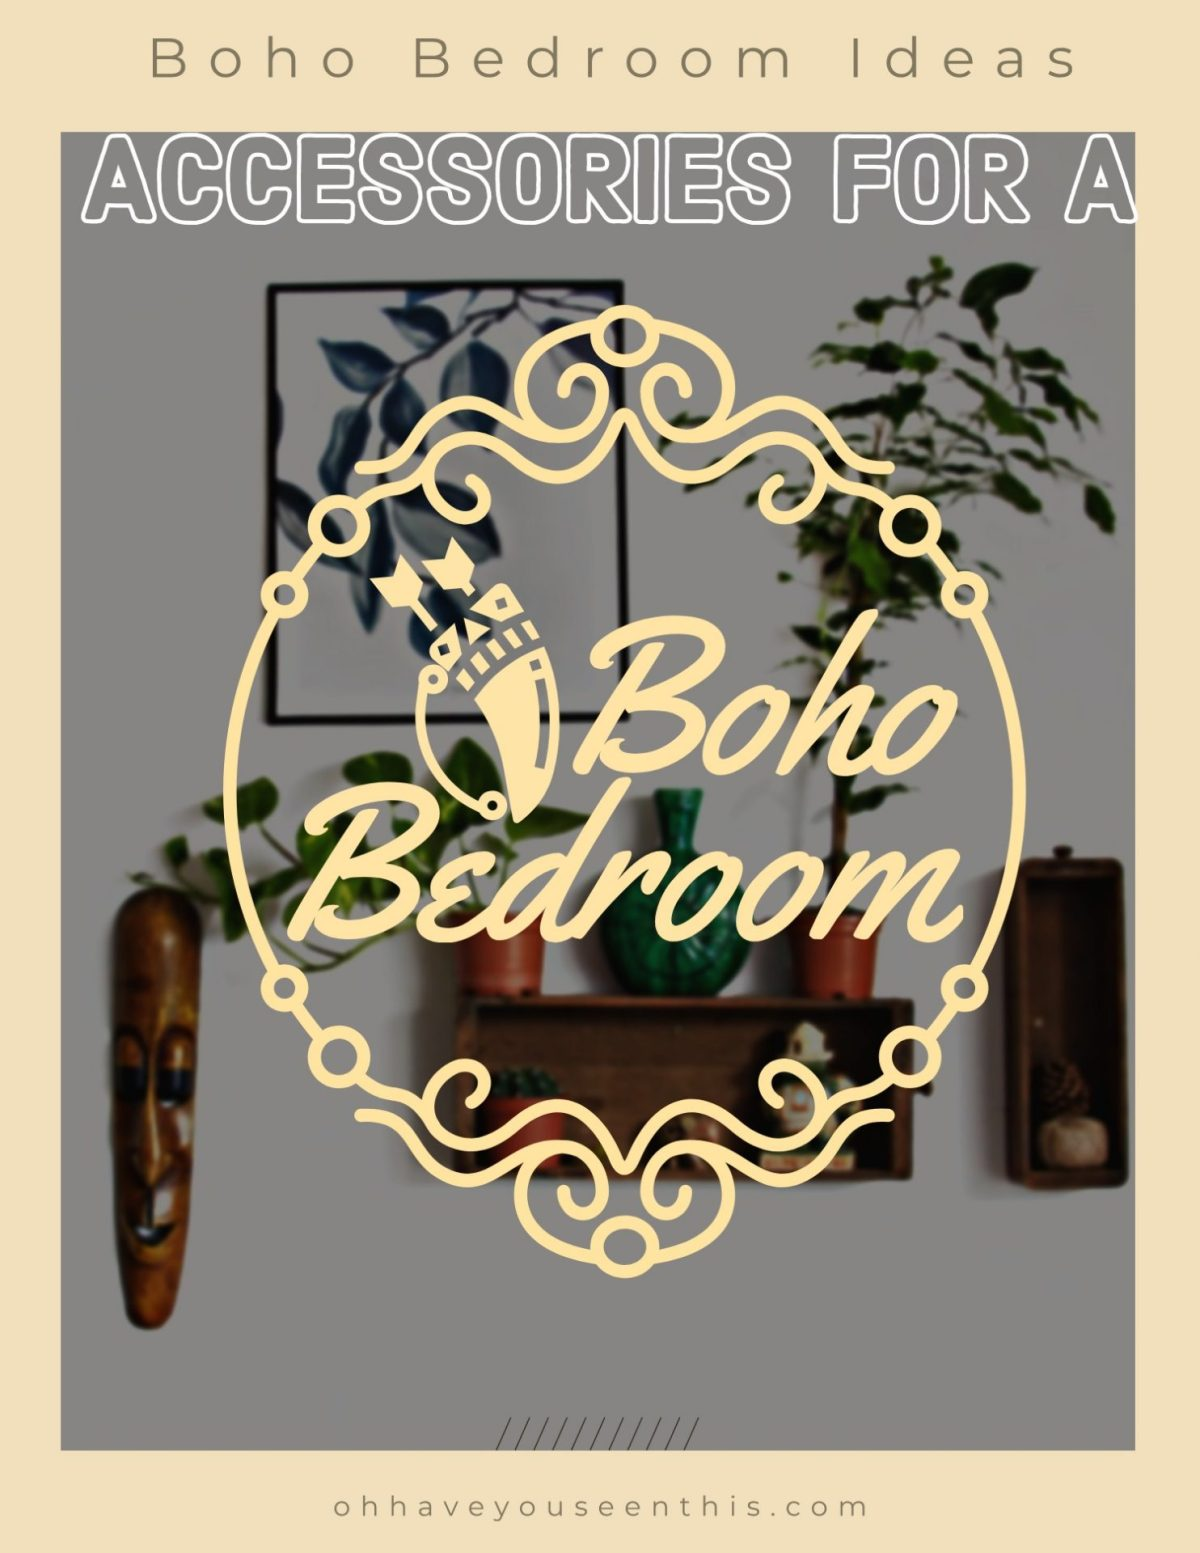 Accessories for a boho bedroom